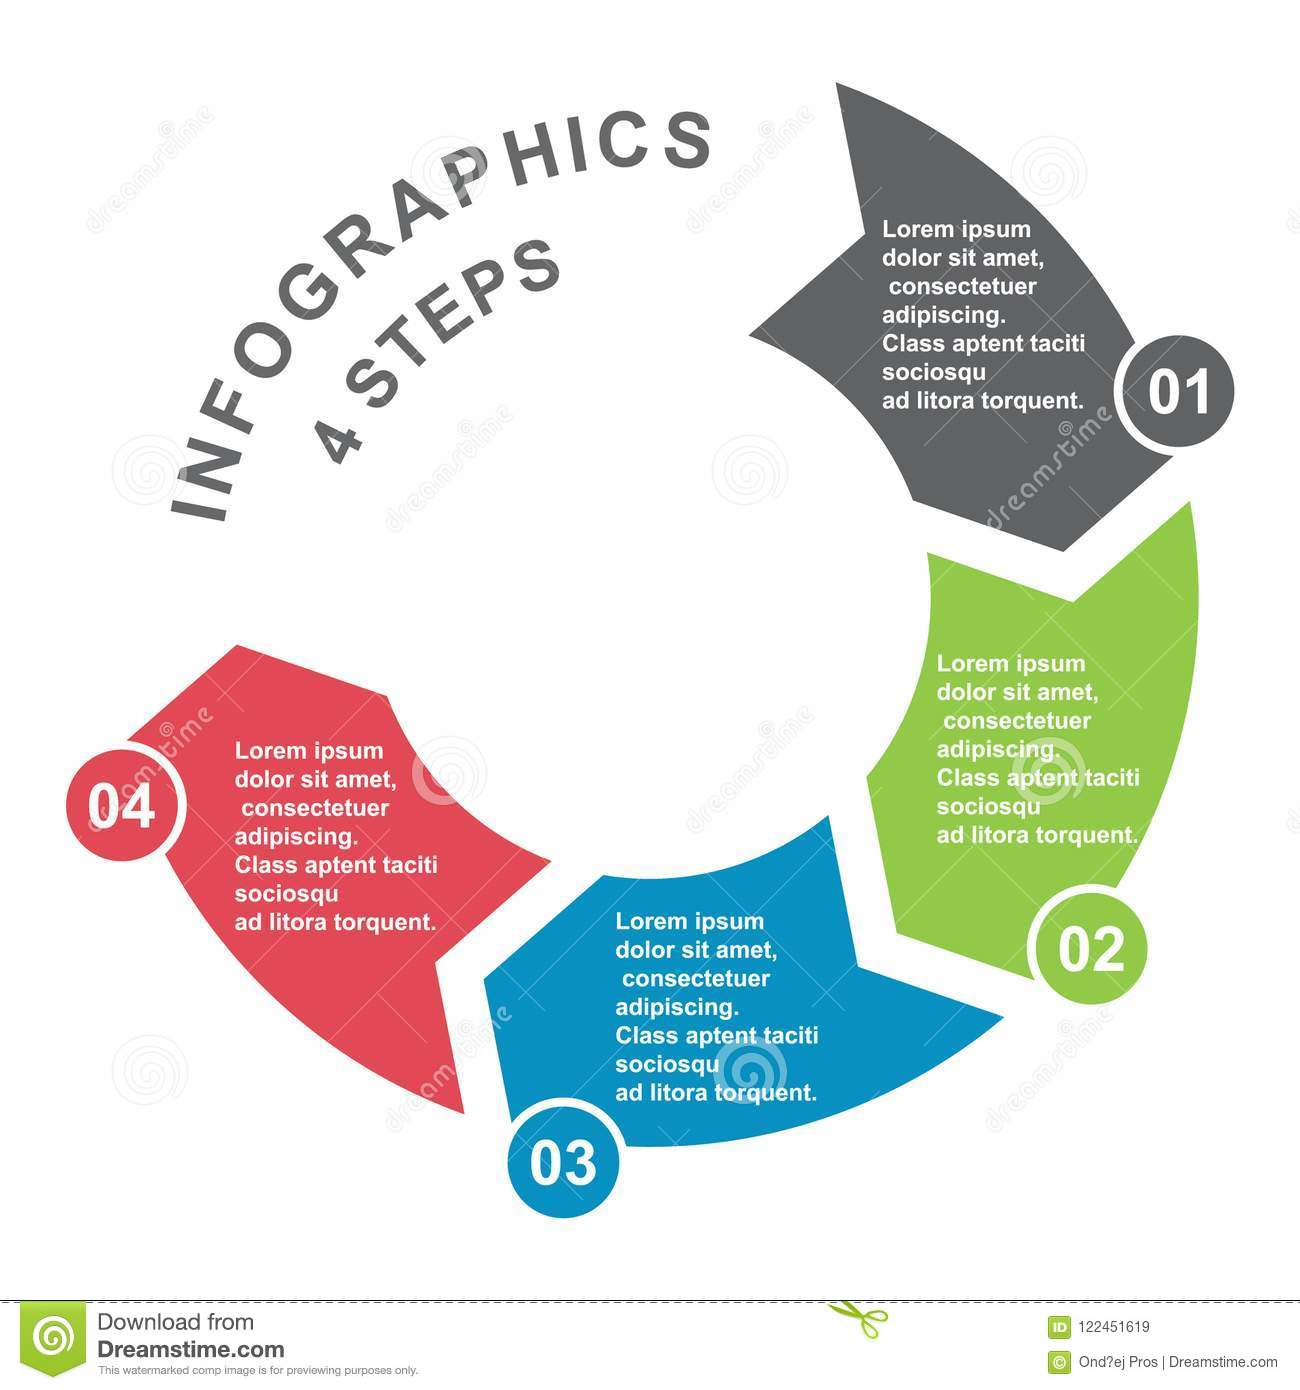 4 step vector element in four colors with labels, infographic diagram. Business concept of 4 steps or options with